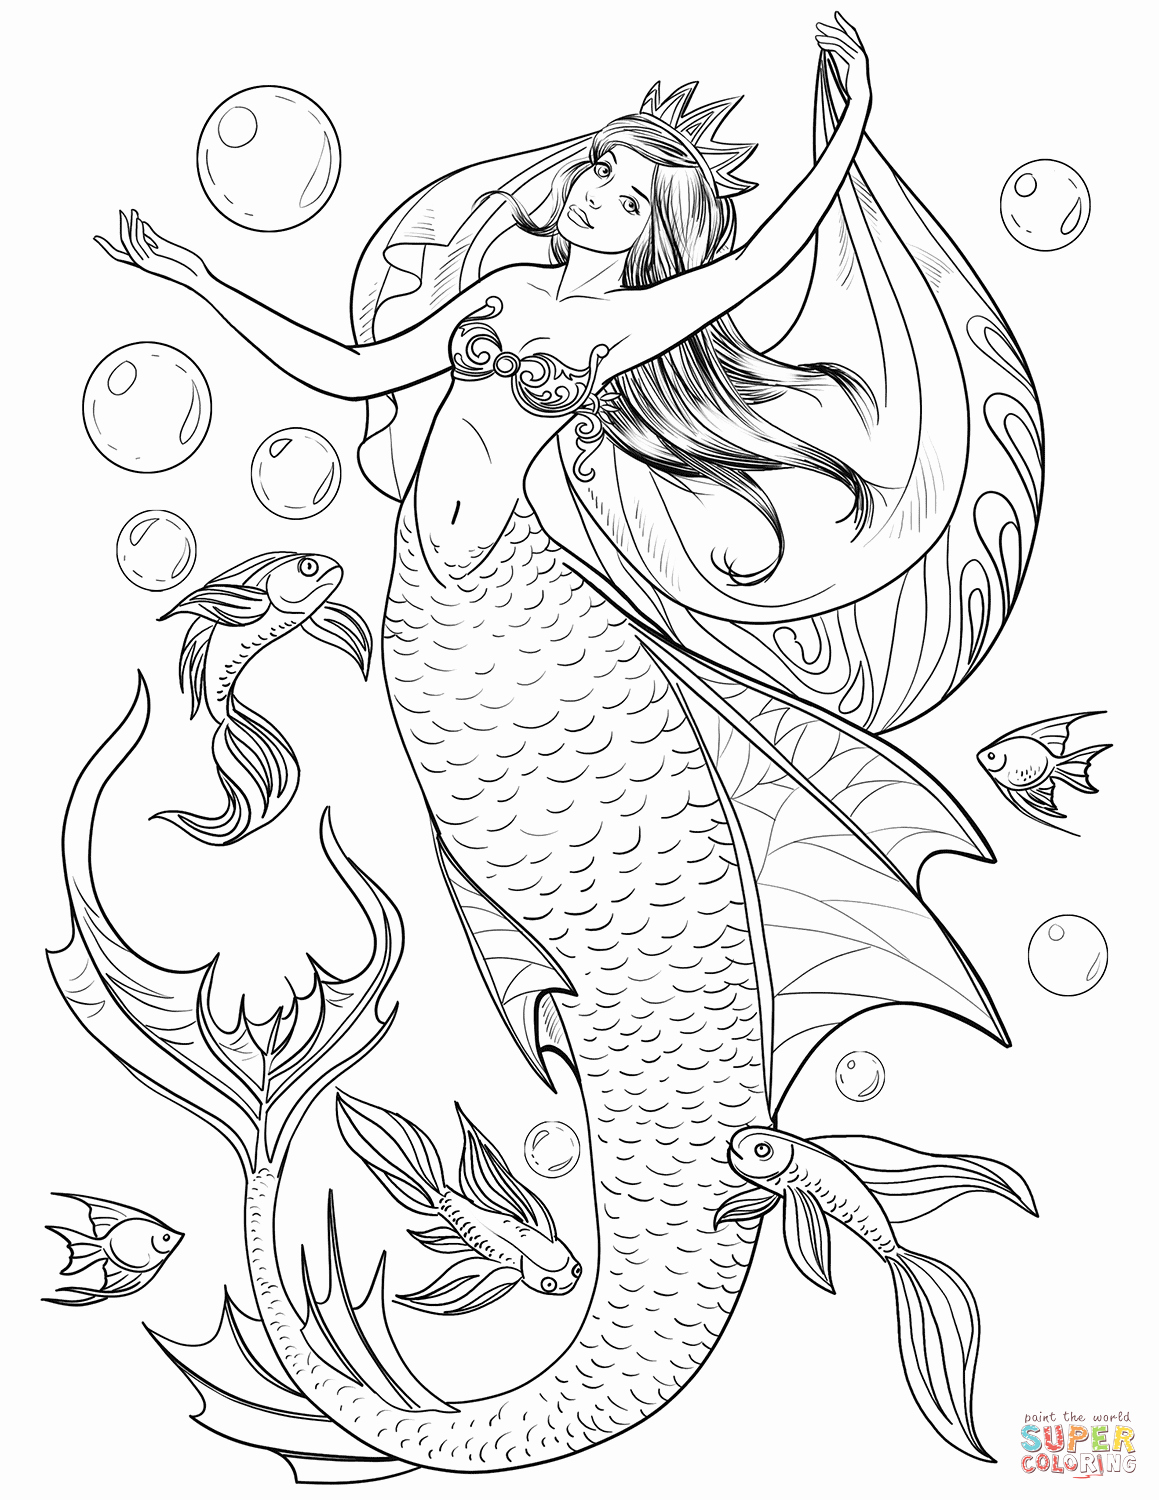 Realistic Mermaid Coloring Pages New Mermaid Coloring Page